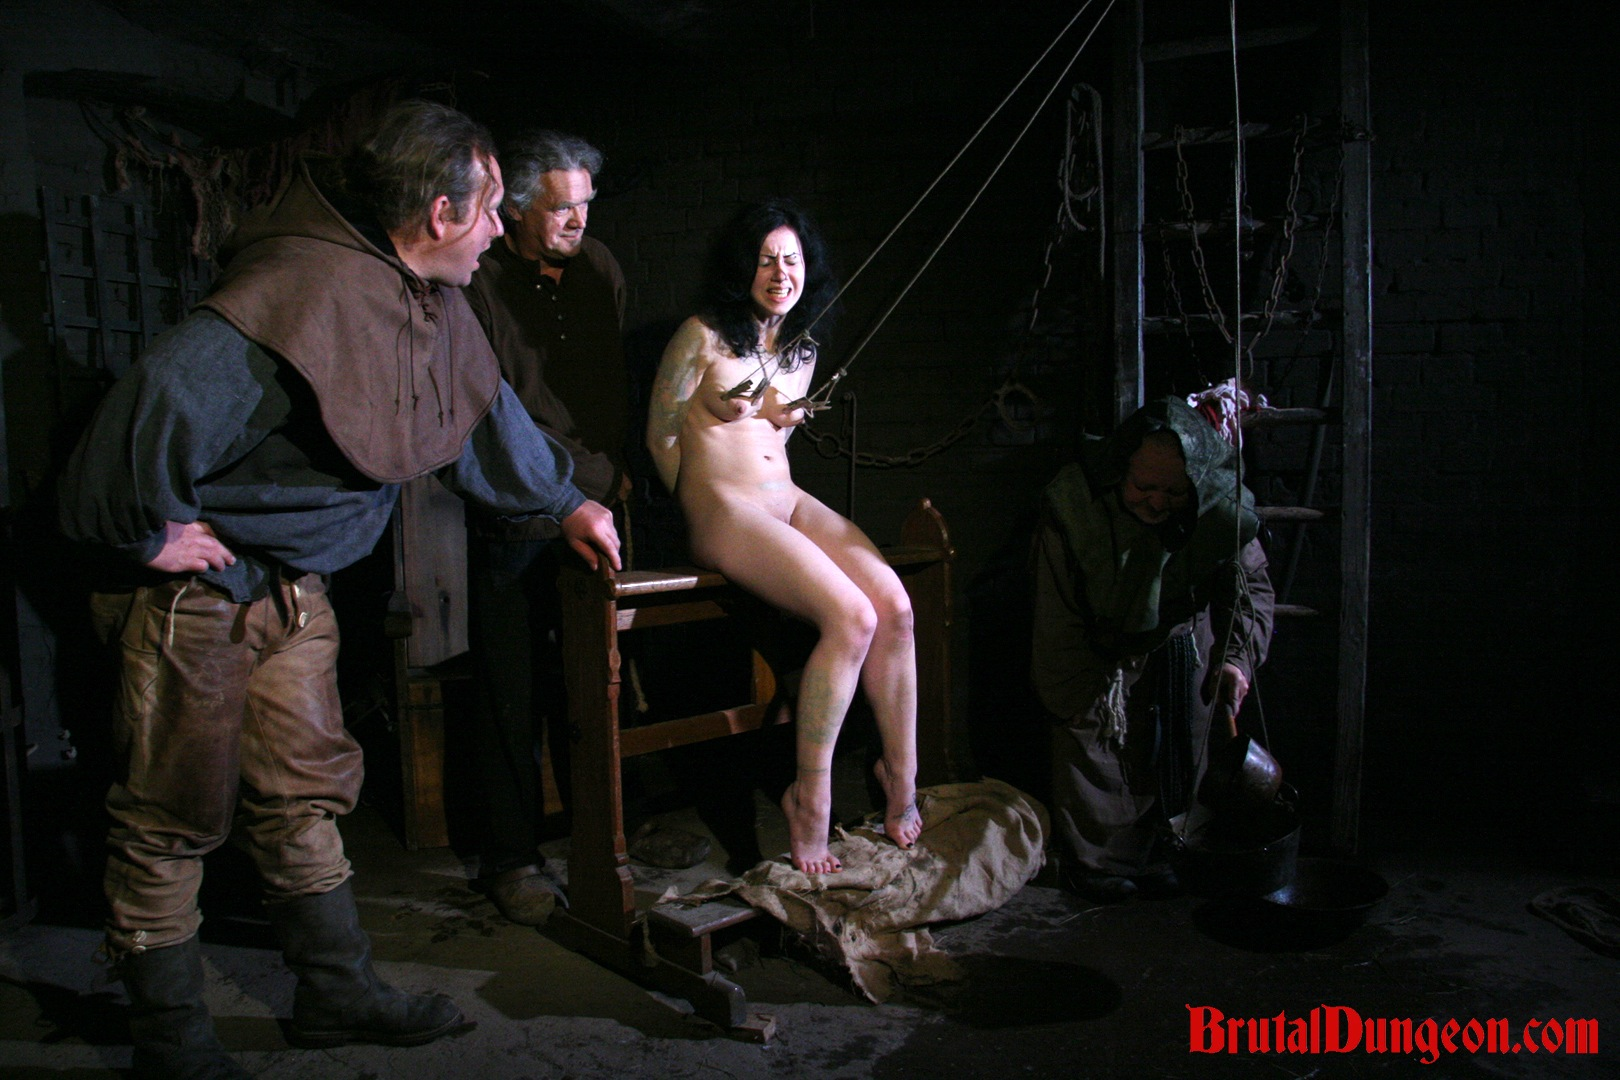 Brunette loredana bdsm gangbang. Brunette witch Loredana has been arrested and punished in our dungeon once a day. She begs for forgiveness and will do anything to earn freedom, even endure imprisonment, rope bondage, domination, BDSM fun, gang bang, clothespins play, weight hanging with a water pail, spanking, slapping, fingering, breast, nipple and pussy torment.